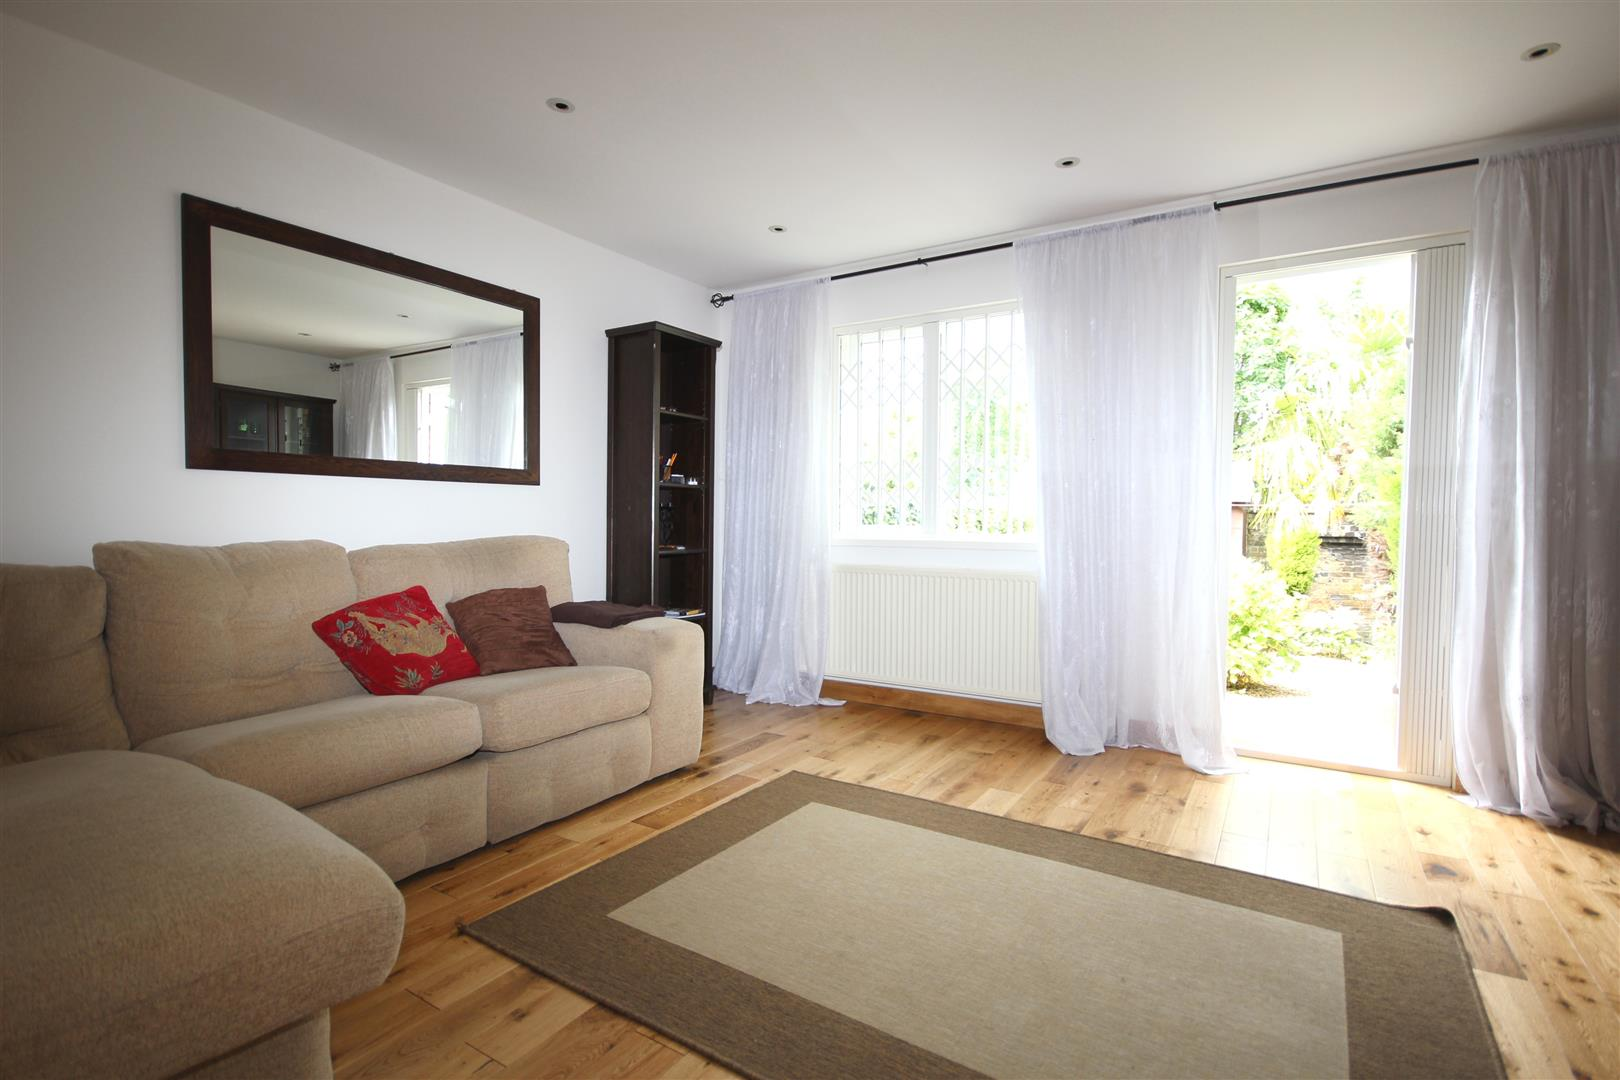 3 Bedrooms House for sale in Beckett Close, London NW10 9BS